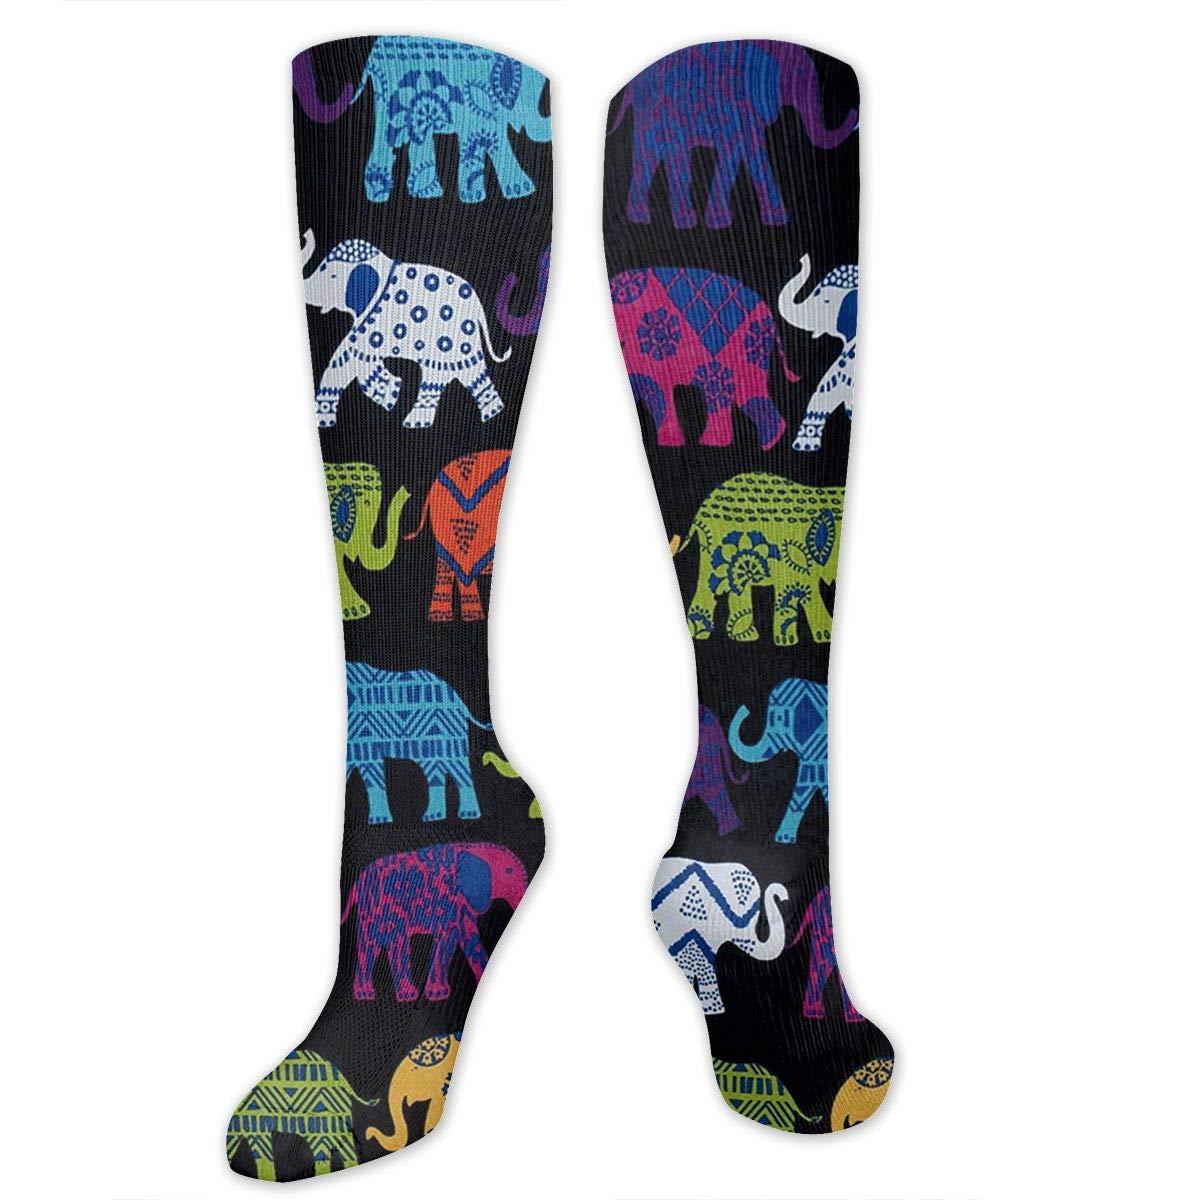 Varicose Veins Ygsdf59 Black Elephants Compression Socks for Women and Men Best Medical,for Running Athletic Travel